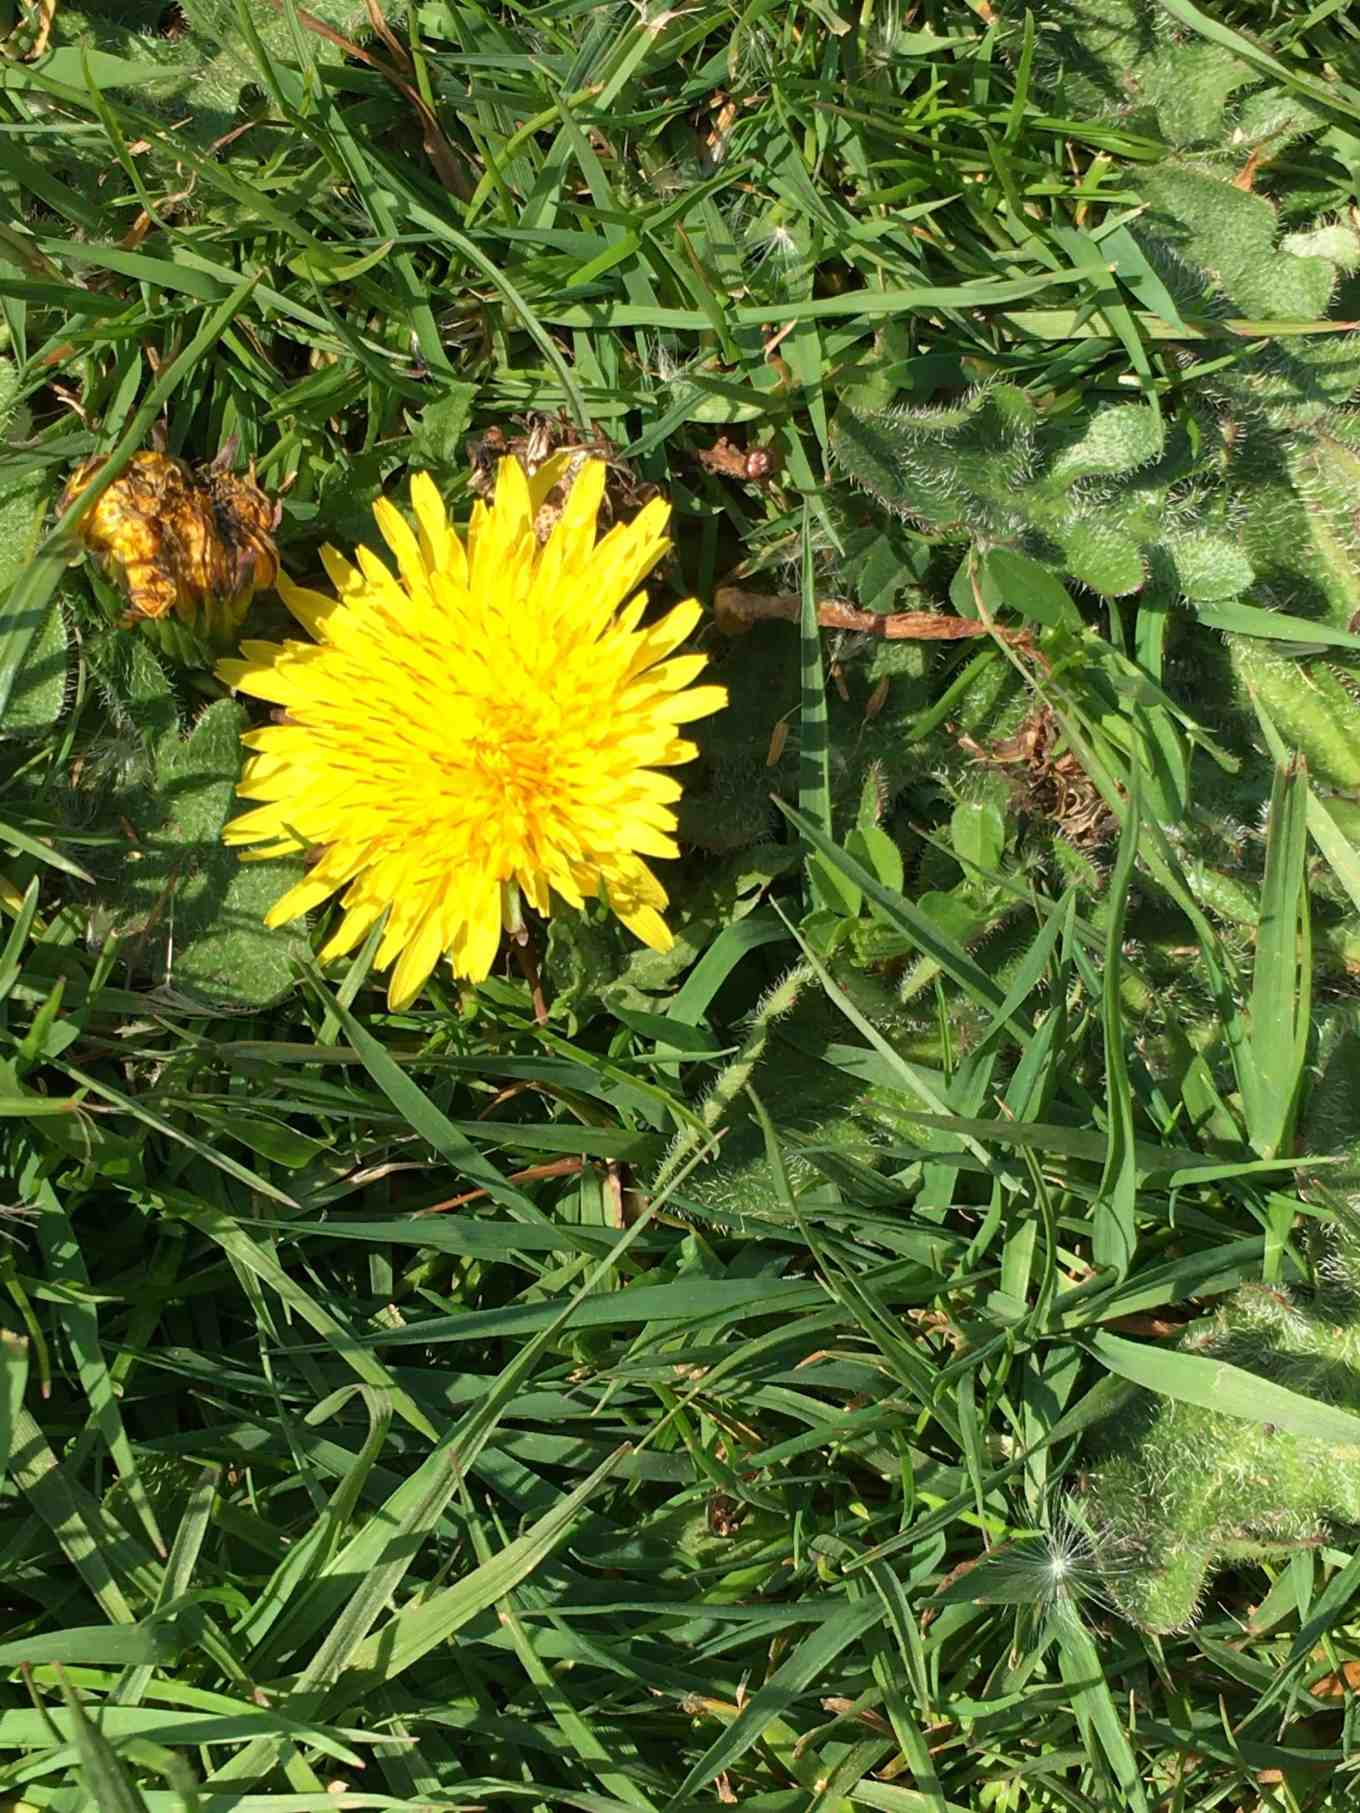 bees love yellow flowers of dandelions in grass